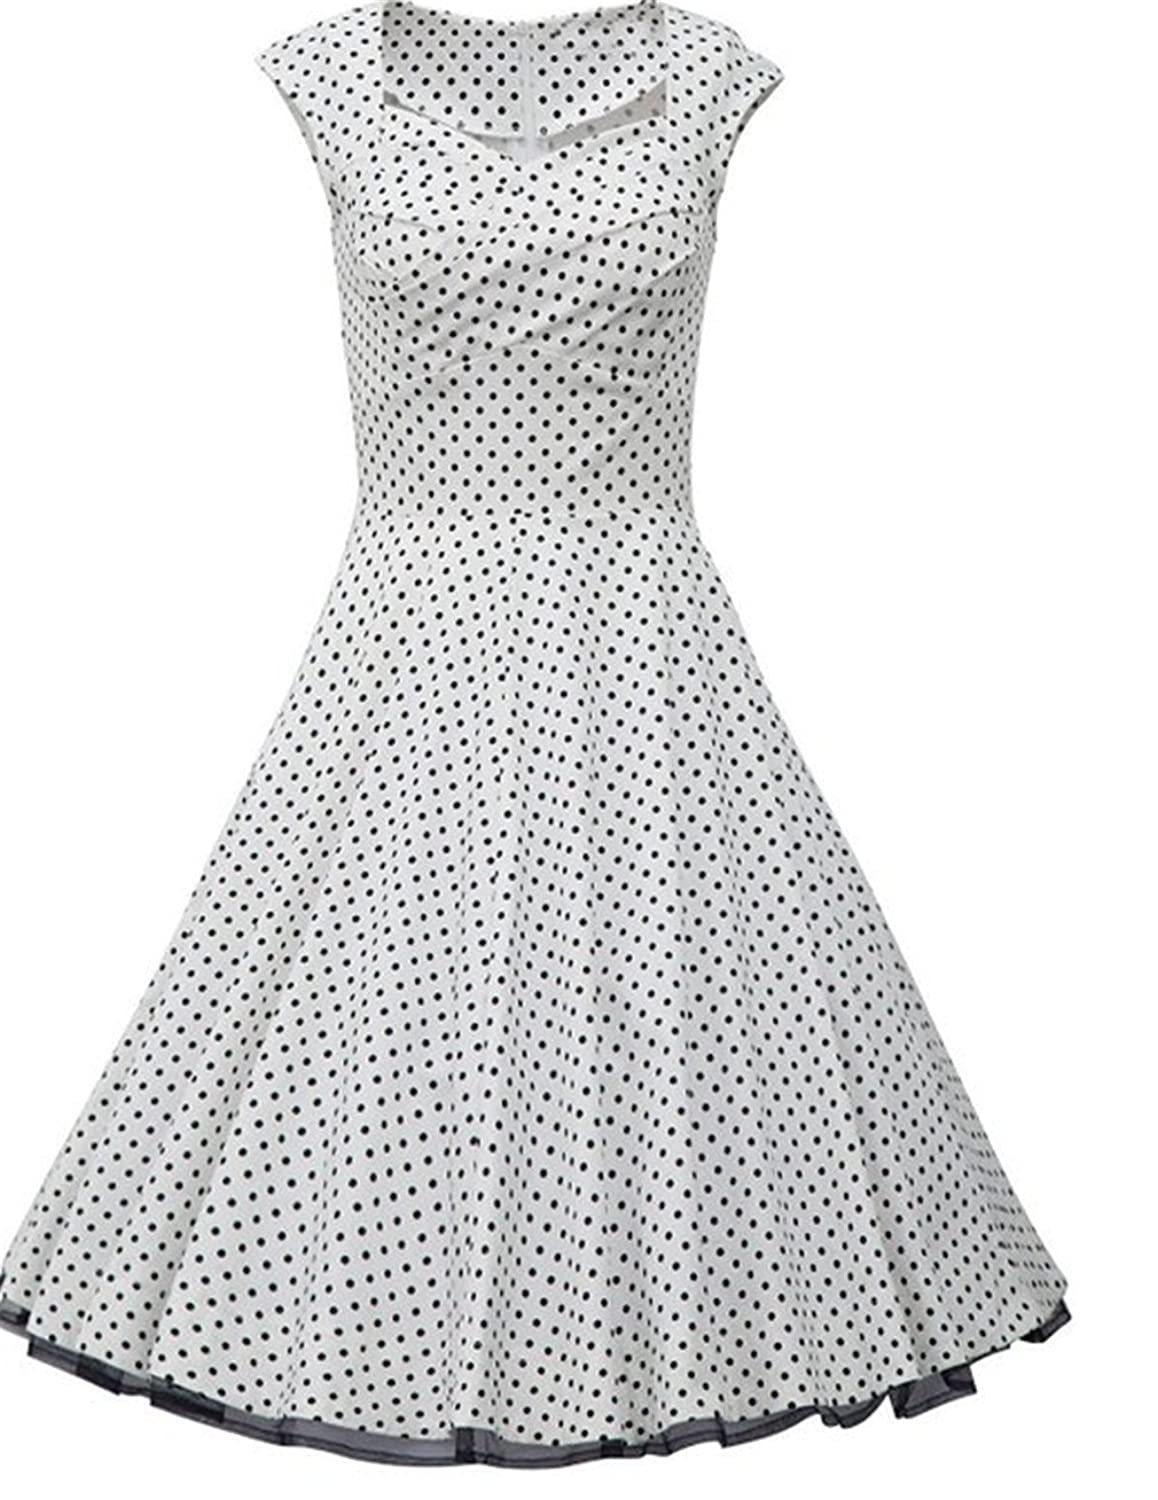 YingLuo Appliques Beaded One-Shoulder Gowns Chiffon Long Evening Dress UK-14 White Polka Dot